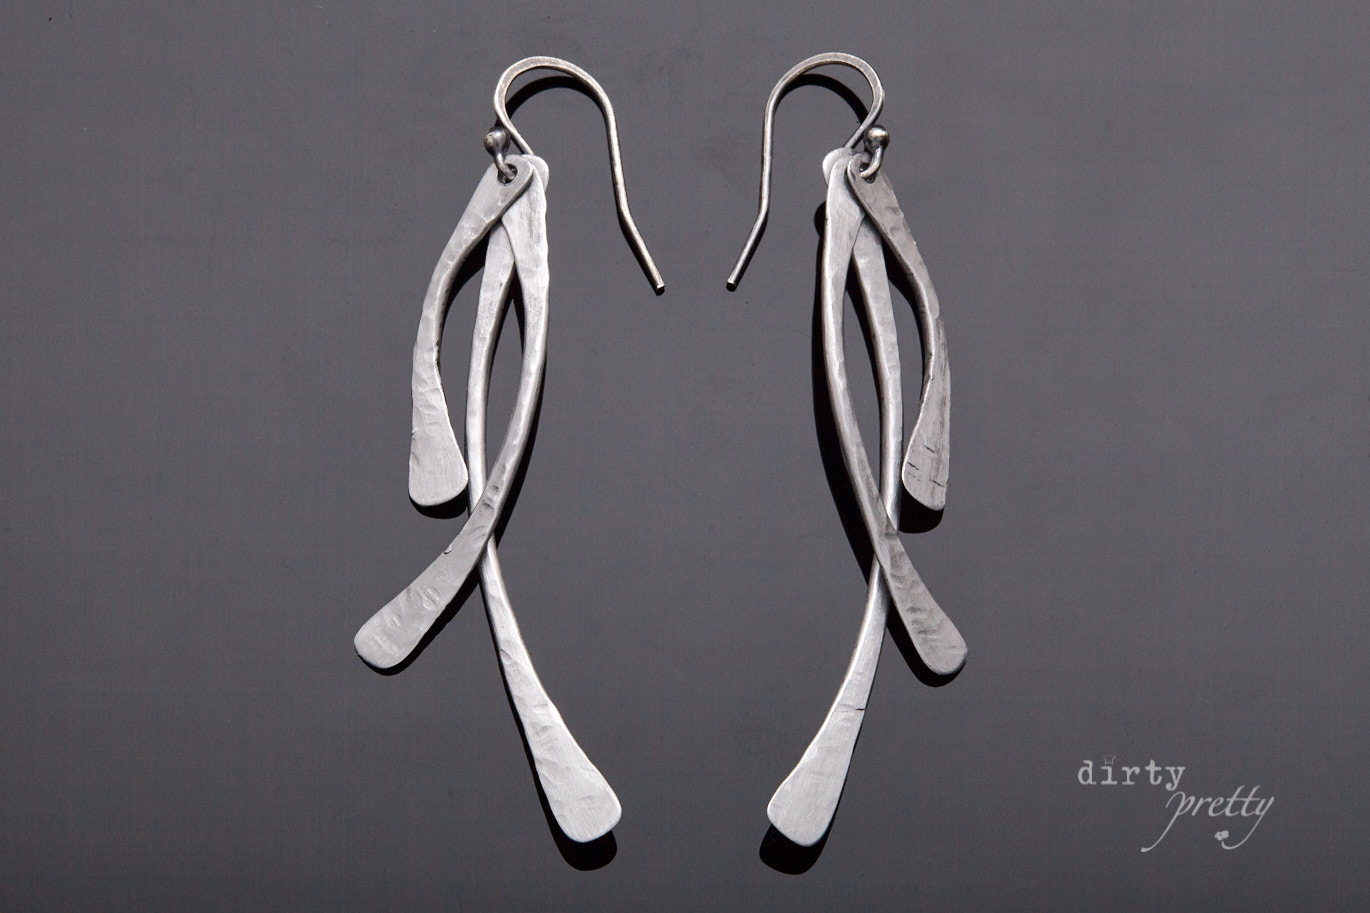 6th anniversary gift-Trio-Iron Earrings-dirtypretty artwear